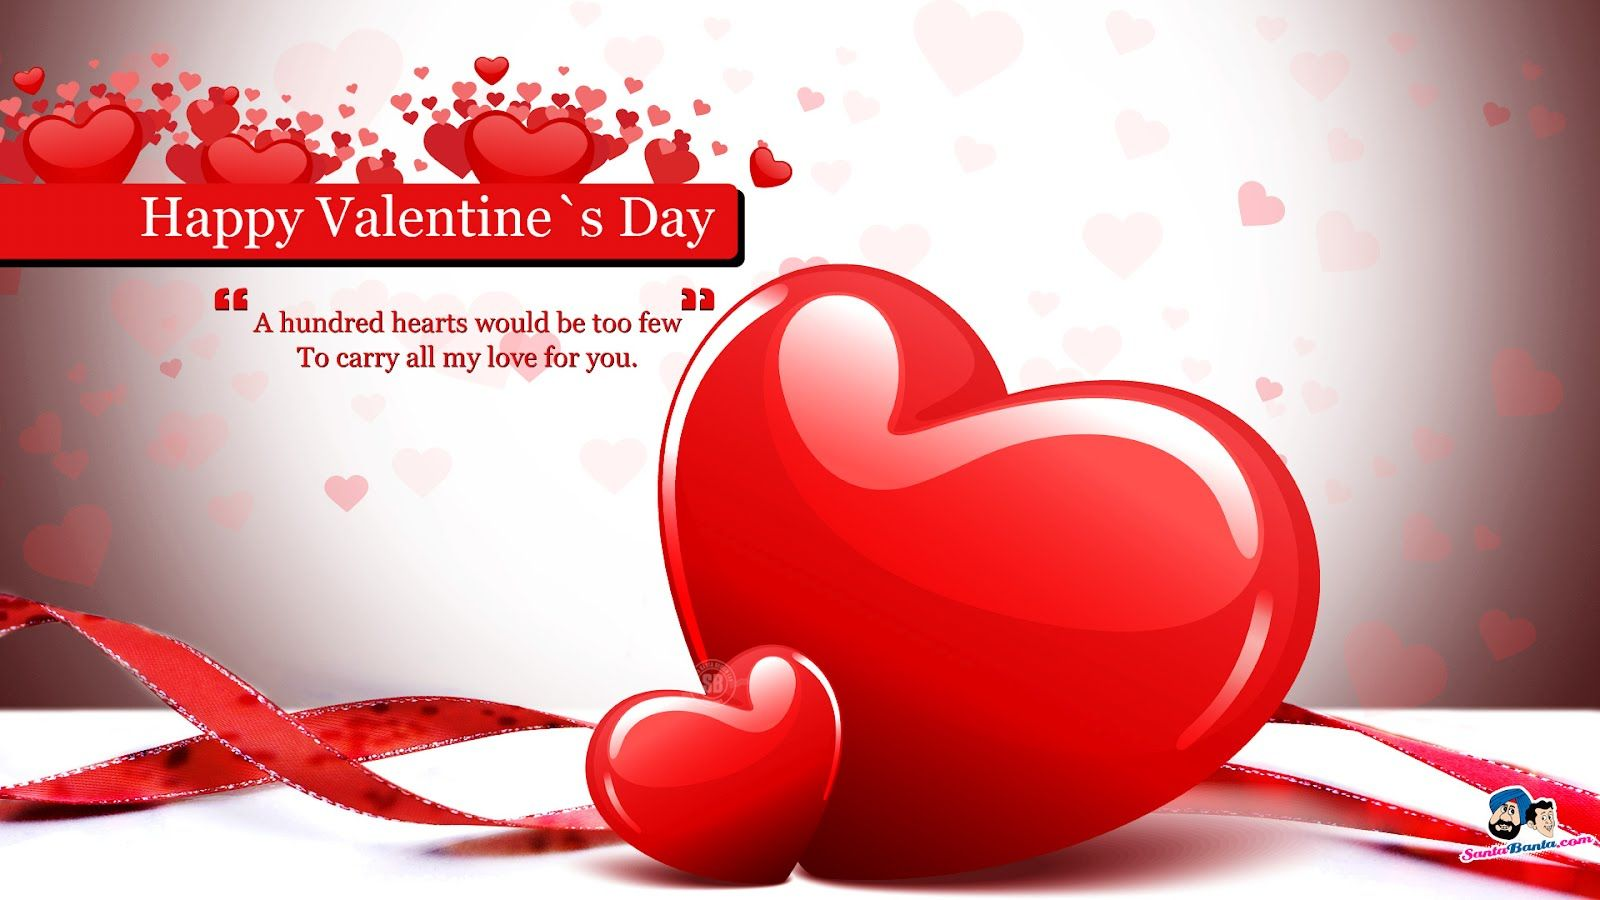 beautiful valentine day greetings with full of love #valentineday